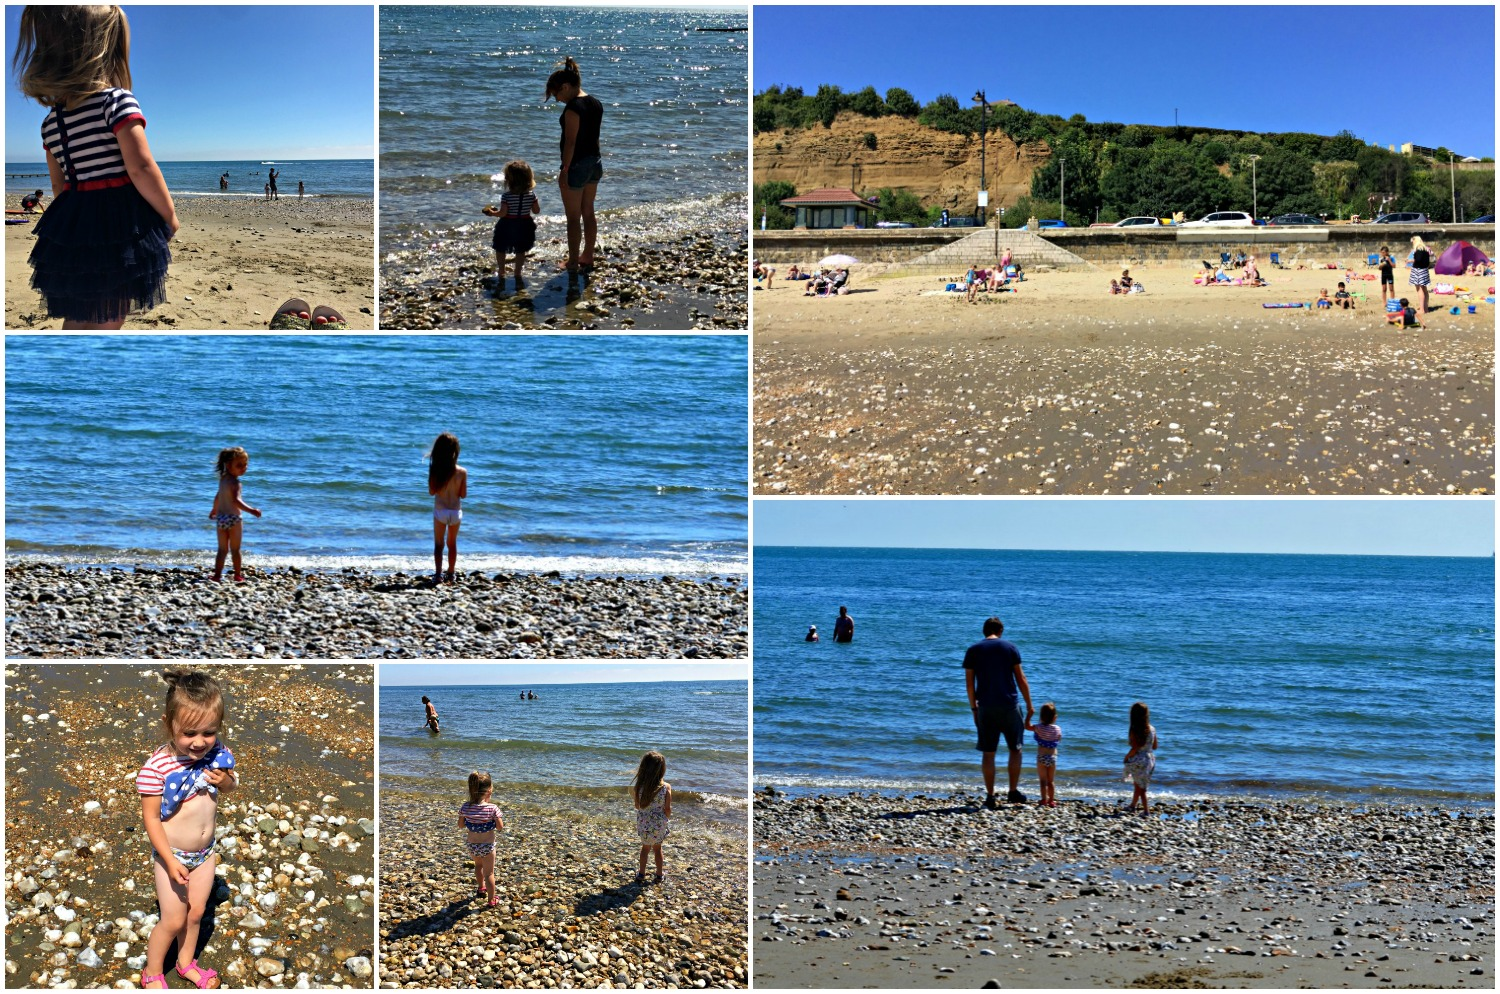 IOW SHANKLIN BEACH